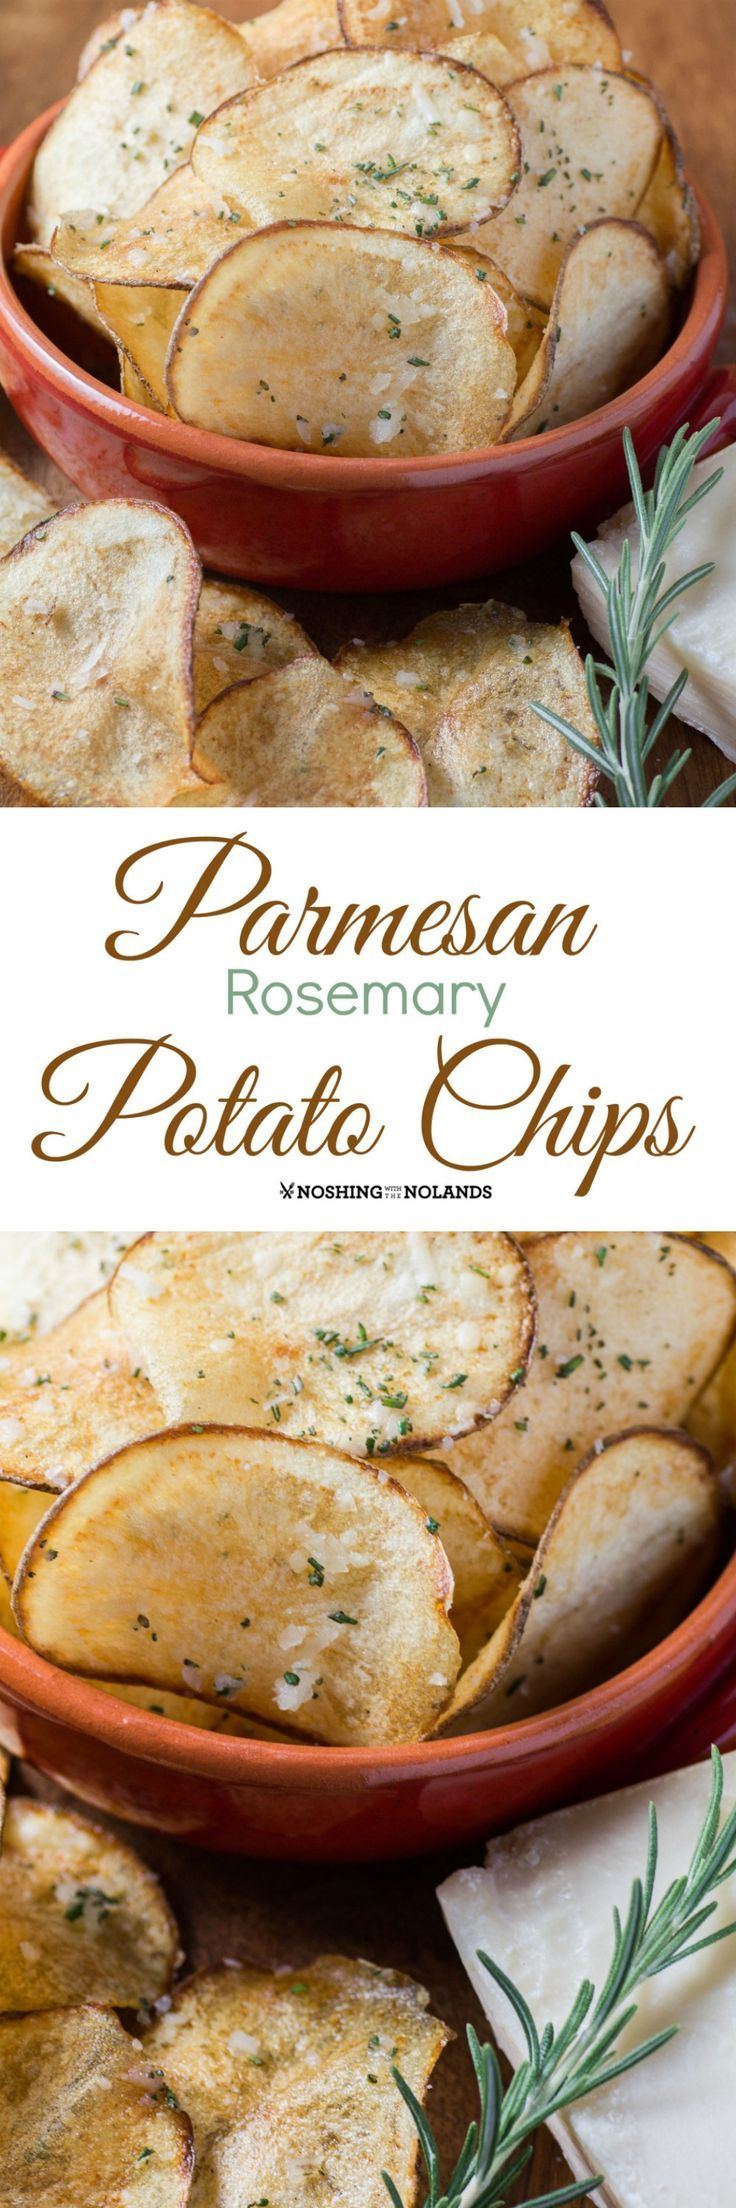 Parmesan Rosemary Potato Chips by Noshing With The Nolands is flavorful treat for the holidays, game day or any day. Family and friends will be in awe!